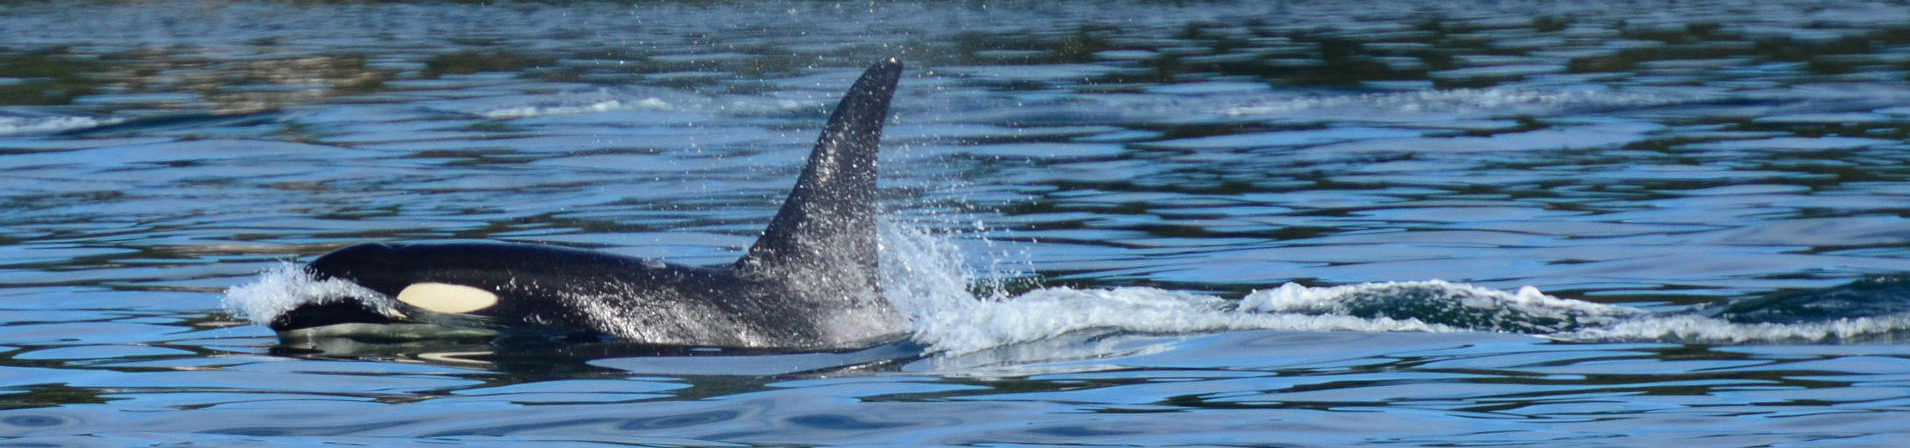 A black and white orca breaching blue ocean water